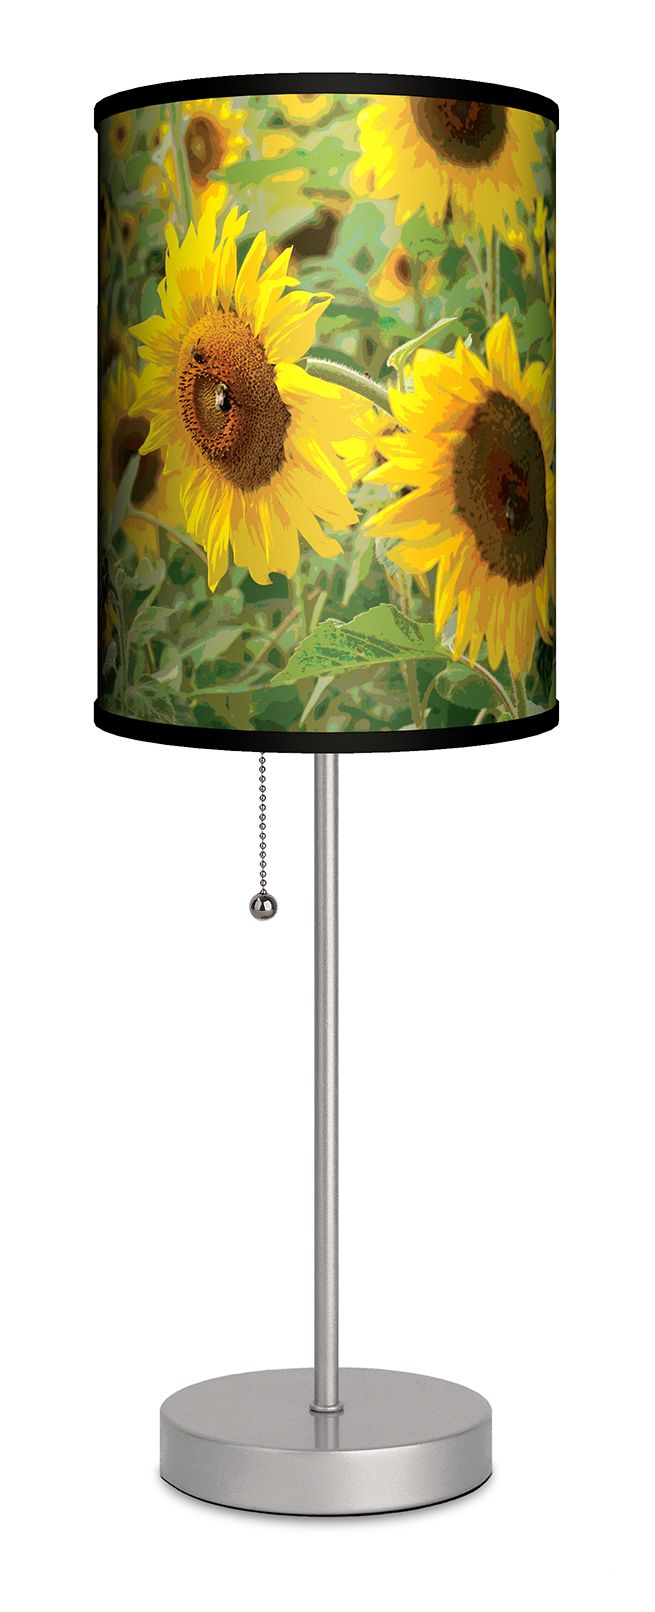 501 best Decorating with Sunflowers #1 images on Pinterest ...